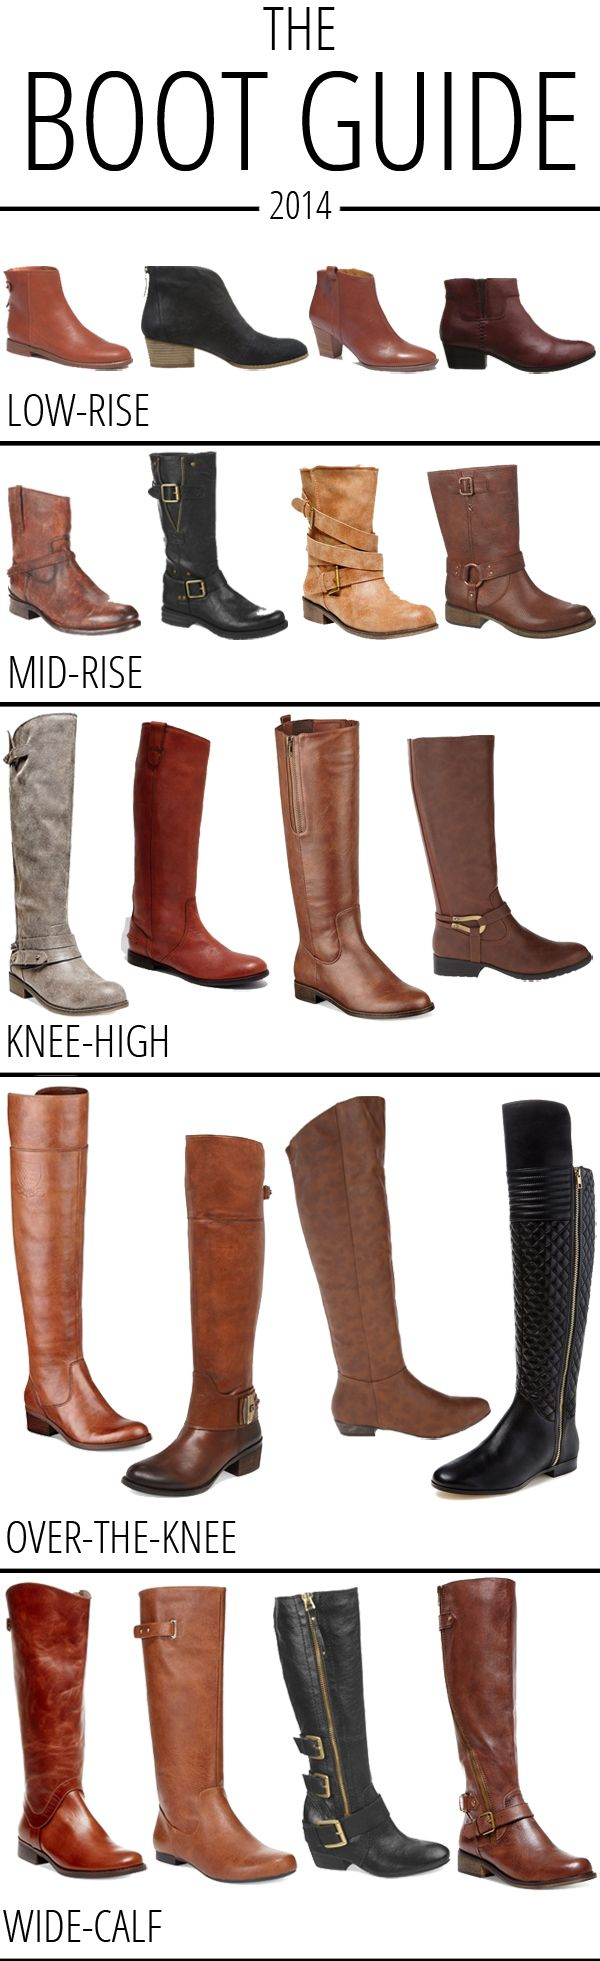 The Boot Guide 2014: favorite low-rise, mid-rise, knee-high, over-the-knee and wide-calf boots!